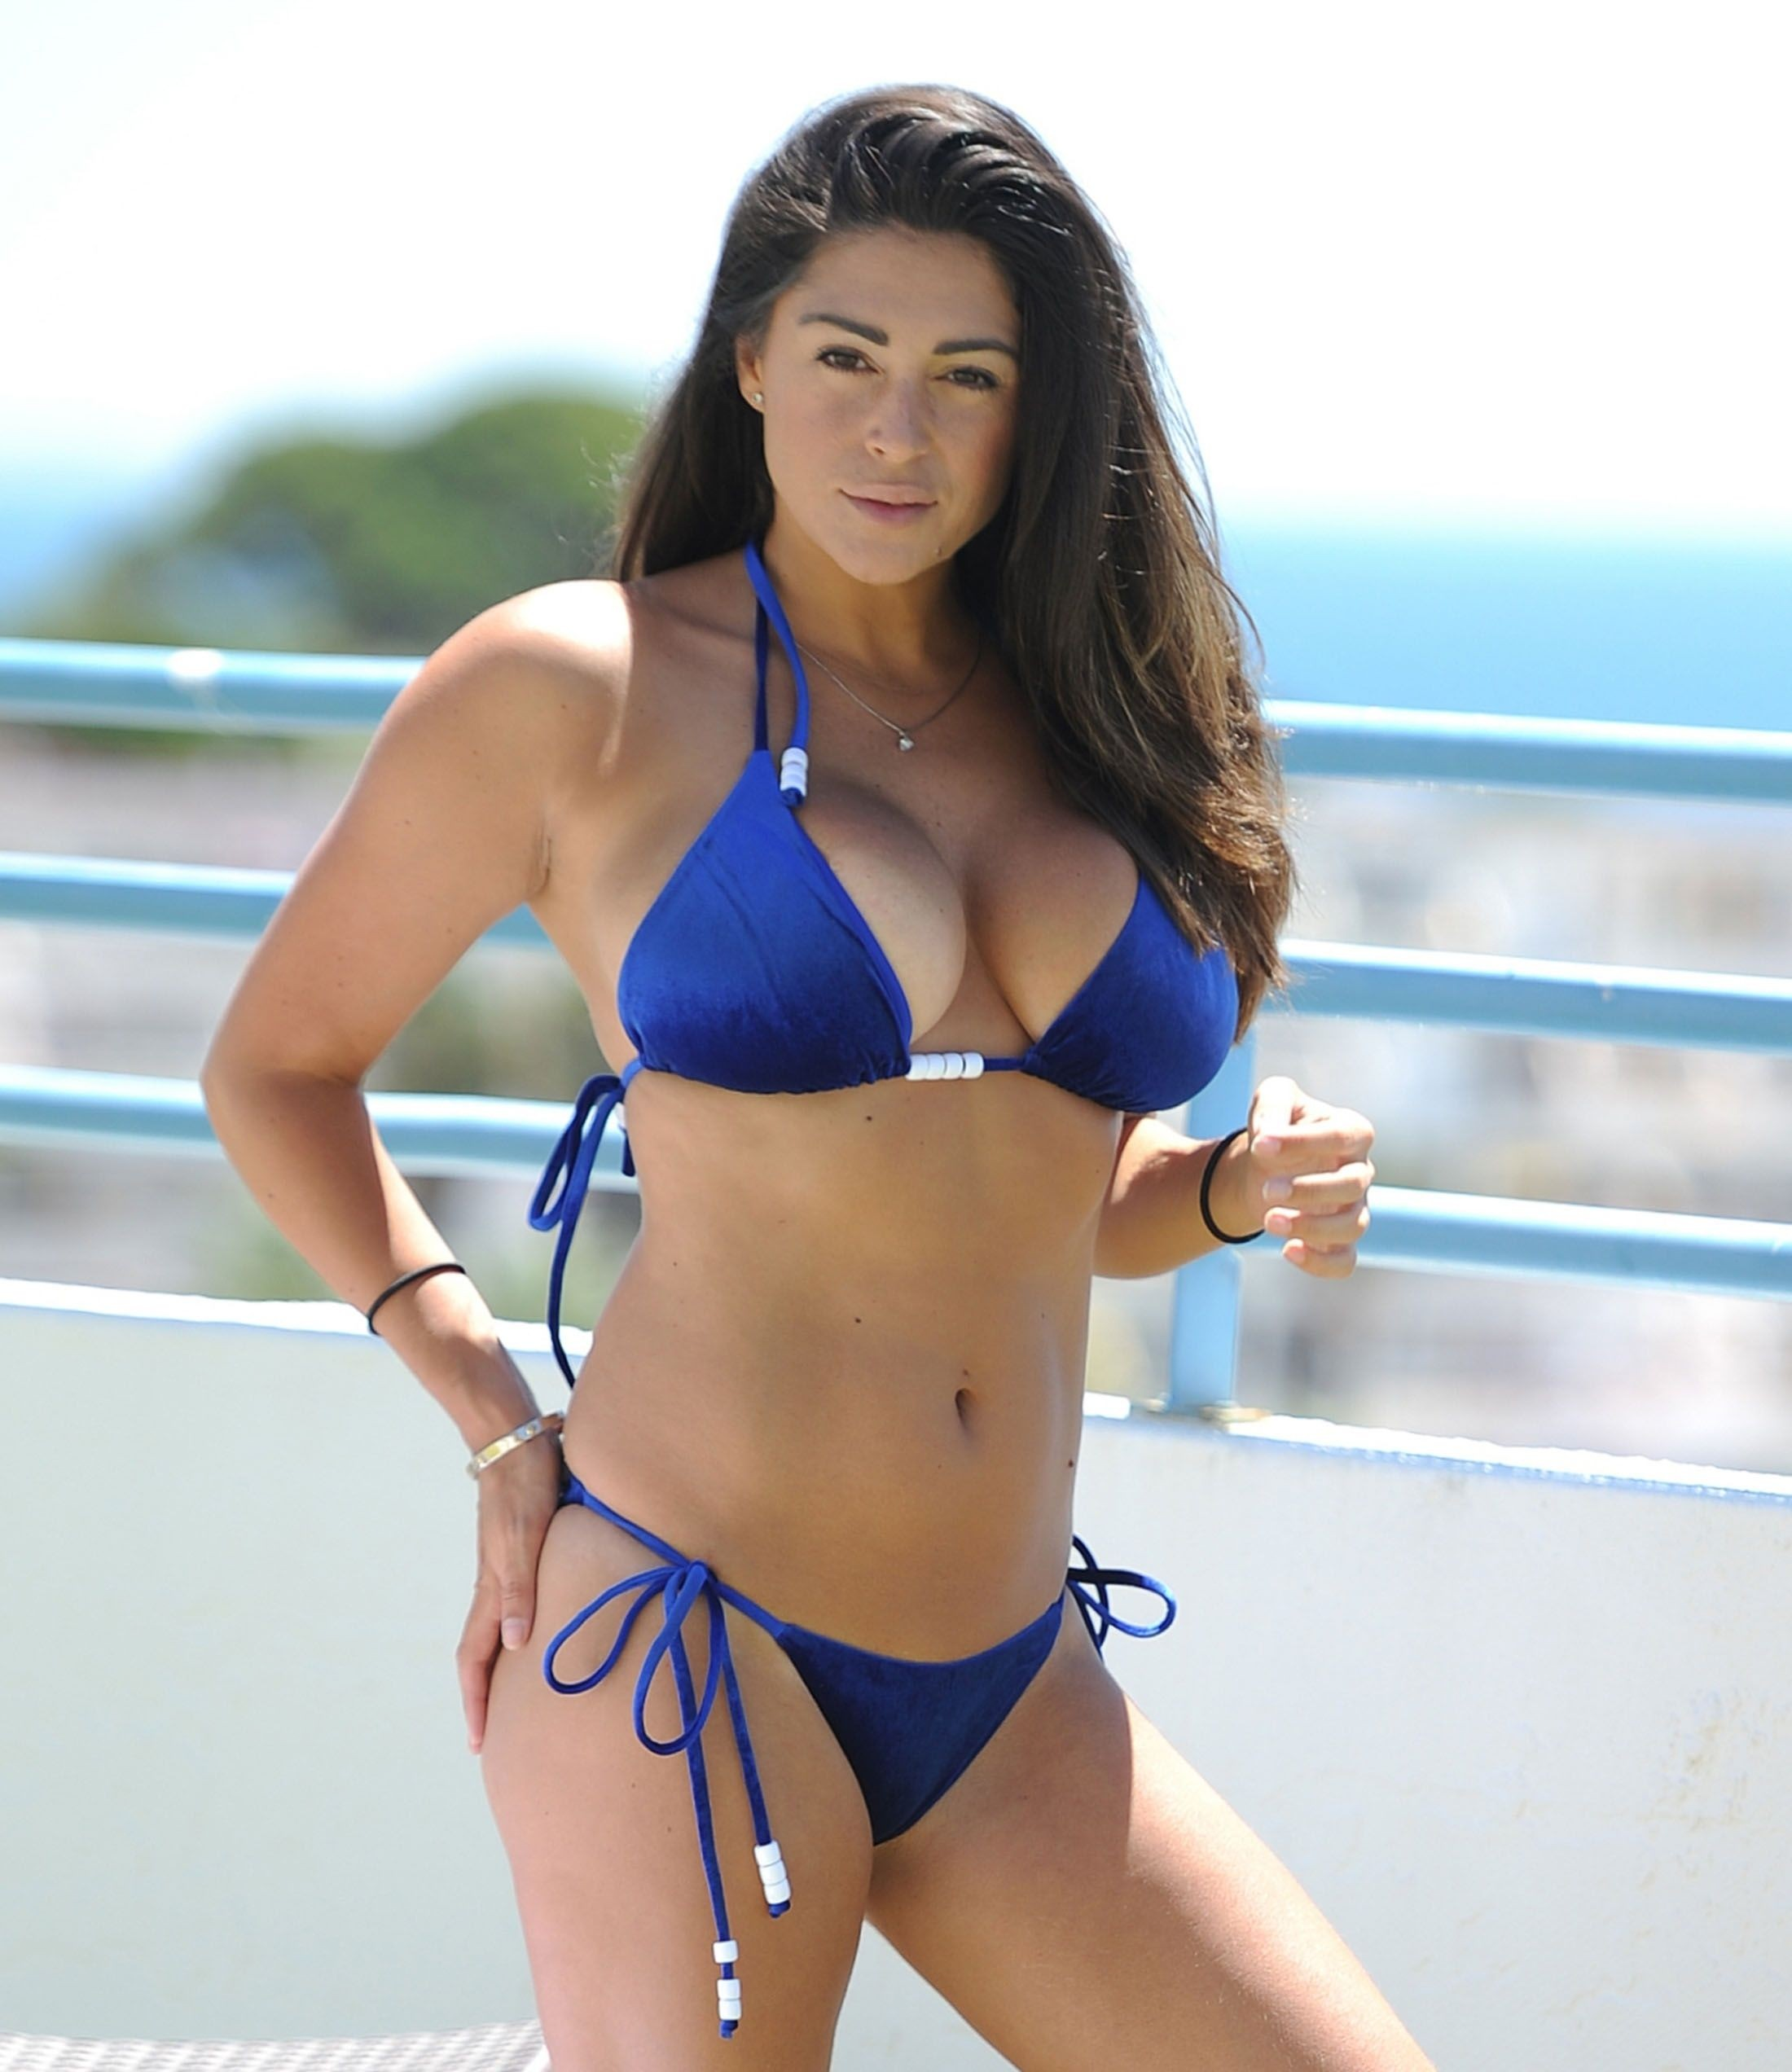 Casey Batchelor Bikini Photos, Great Cleavage